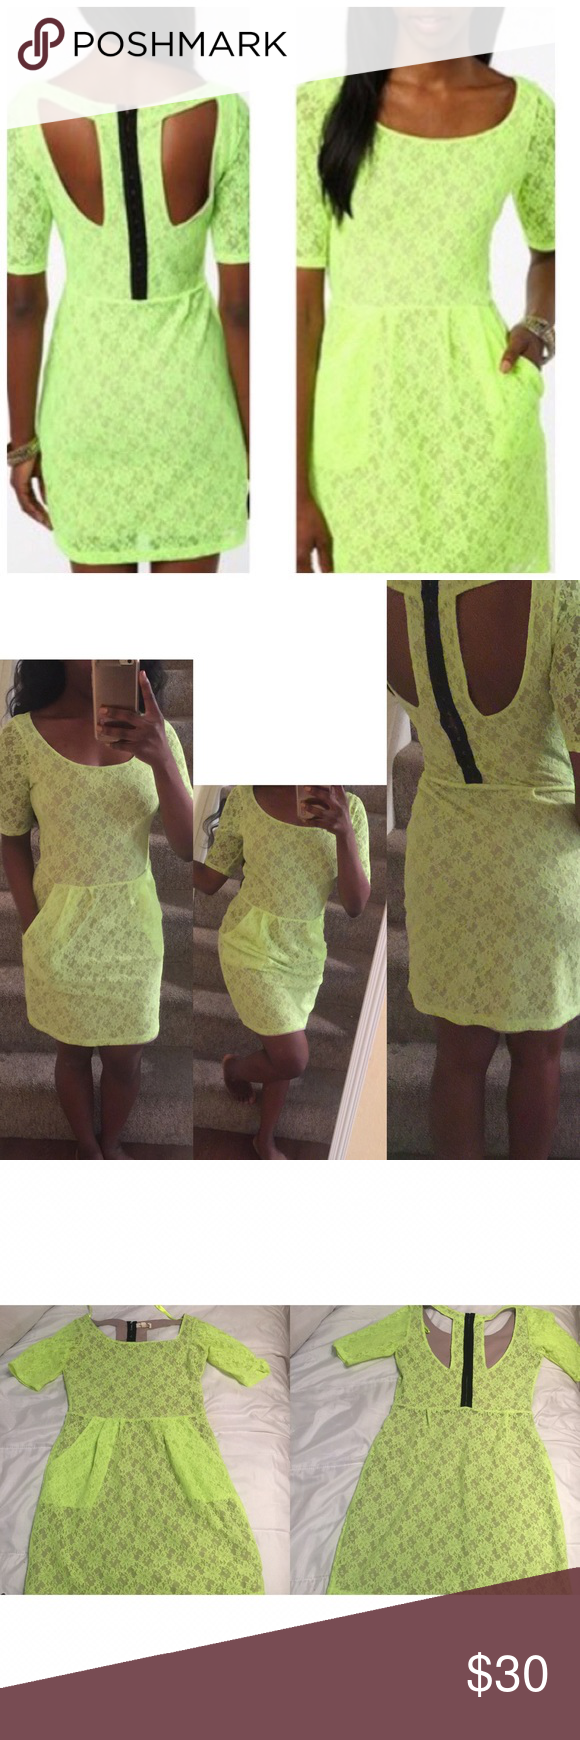 Neon Lace Dress with Pockets Beautiful condition dress. Brand is called Silence + Noise, a line that is distributed by Urban Outfitters. Worn only once. Has cute cutouts in the back and pockets on either side. Urban Outfitters Dresses